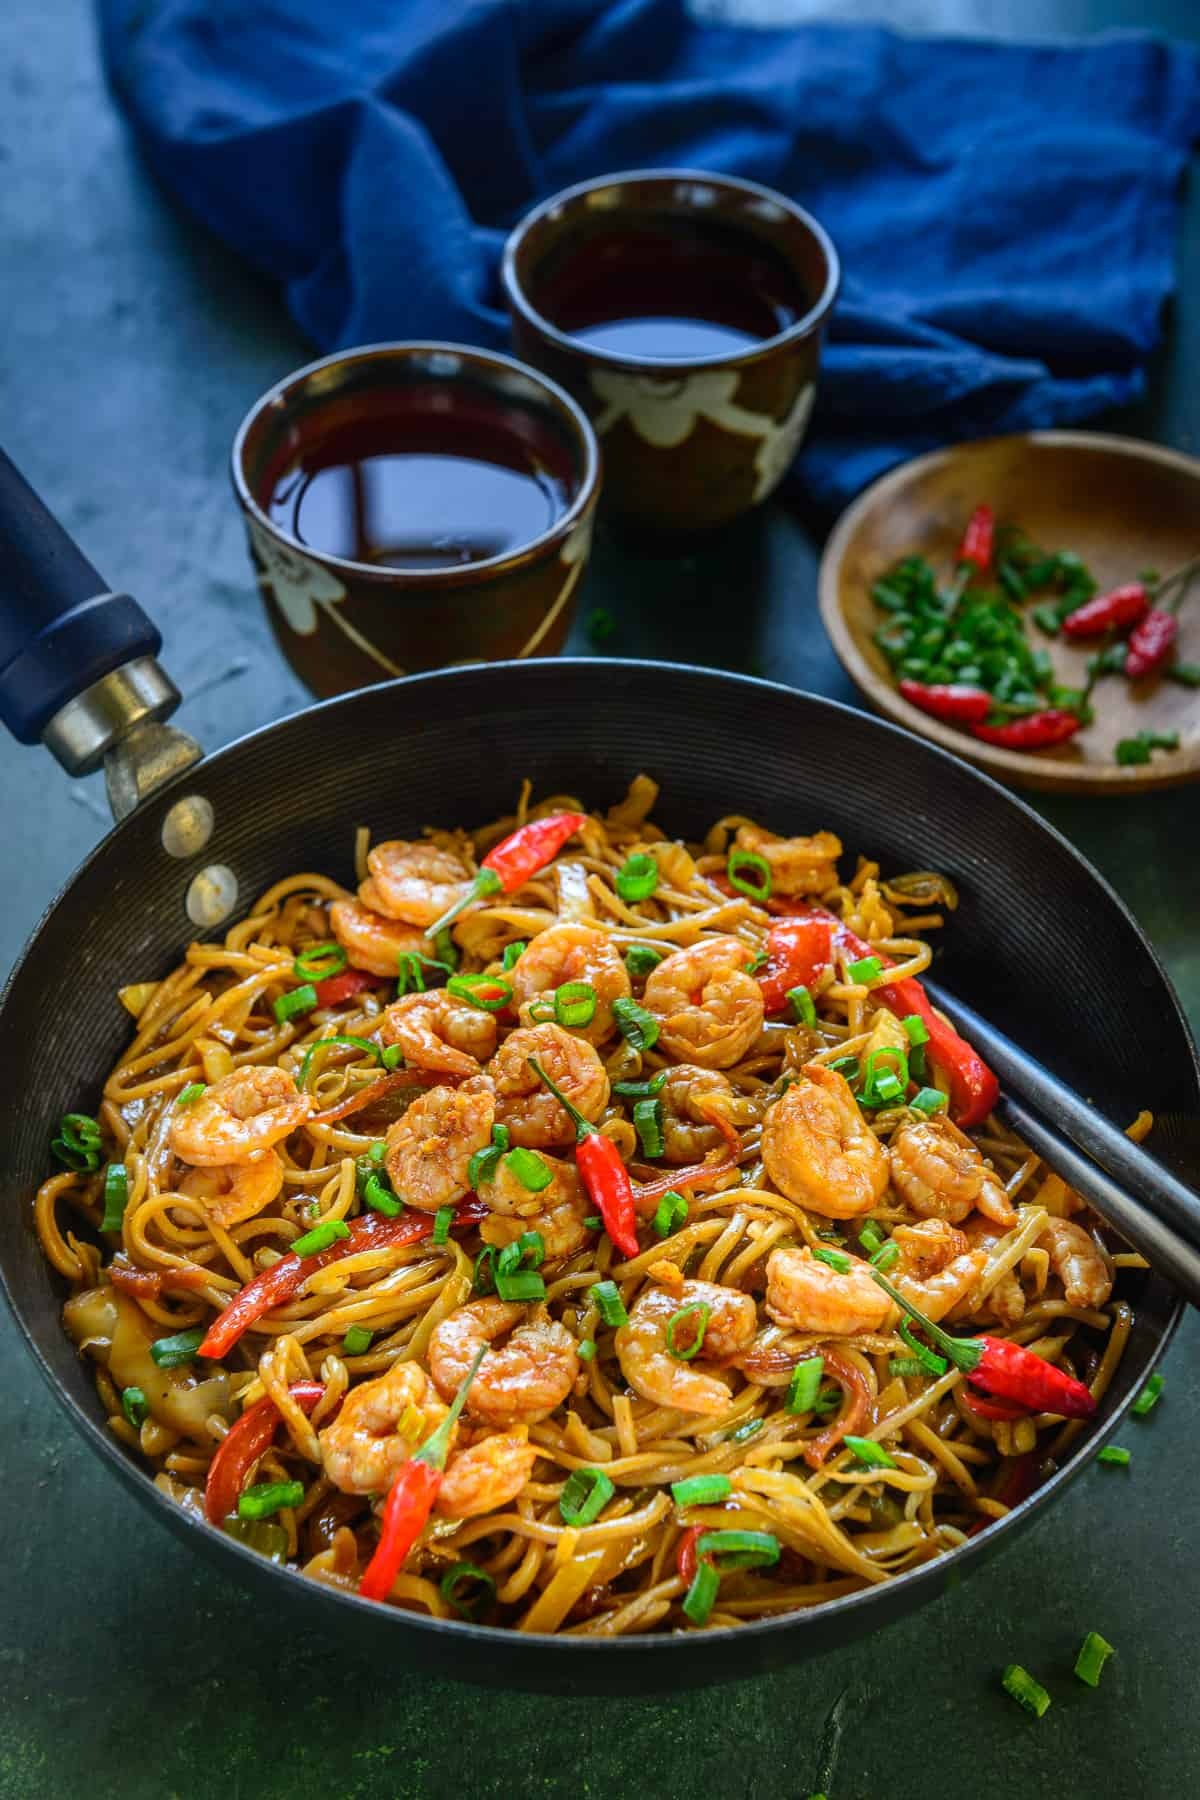 Shrimp Chow Mein served in a large bowl.